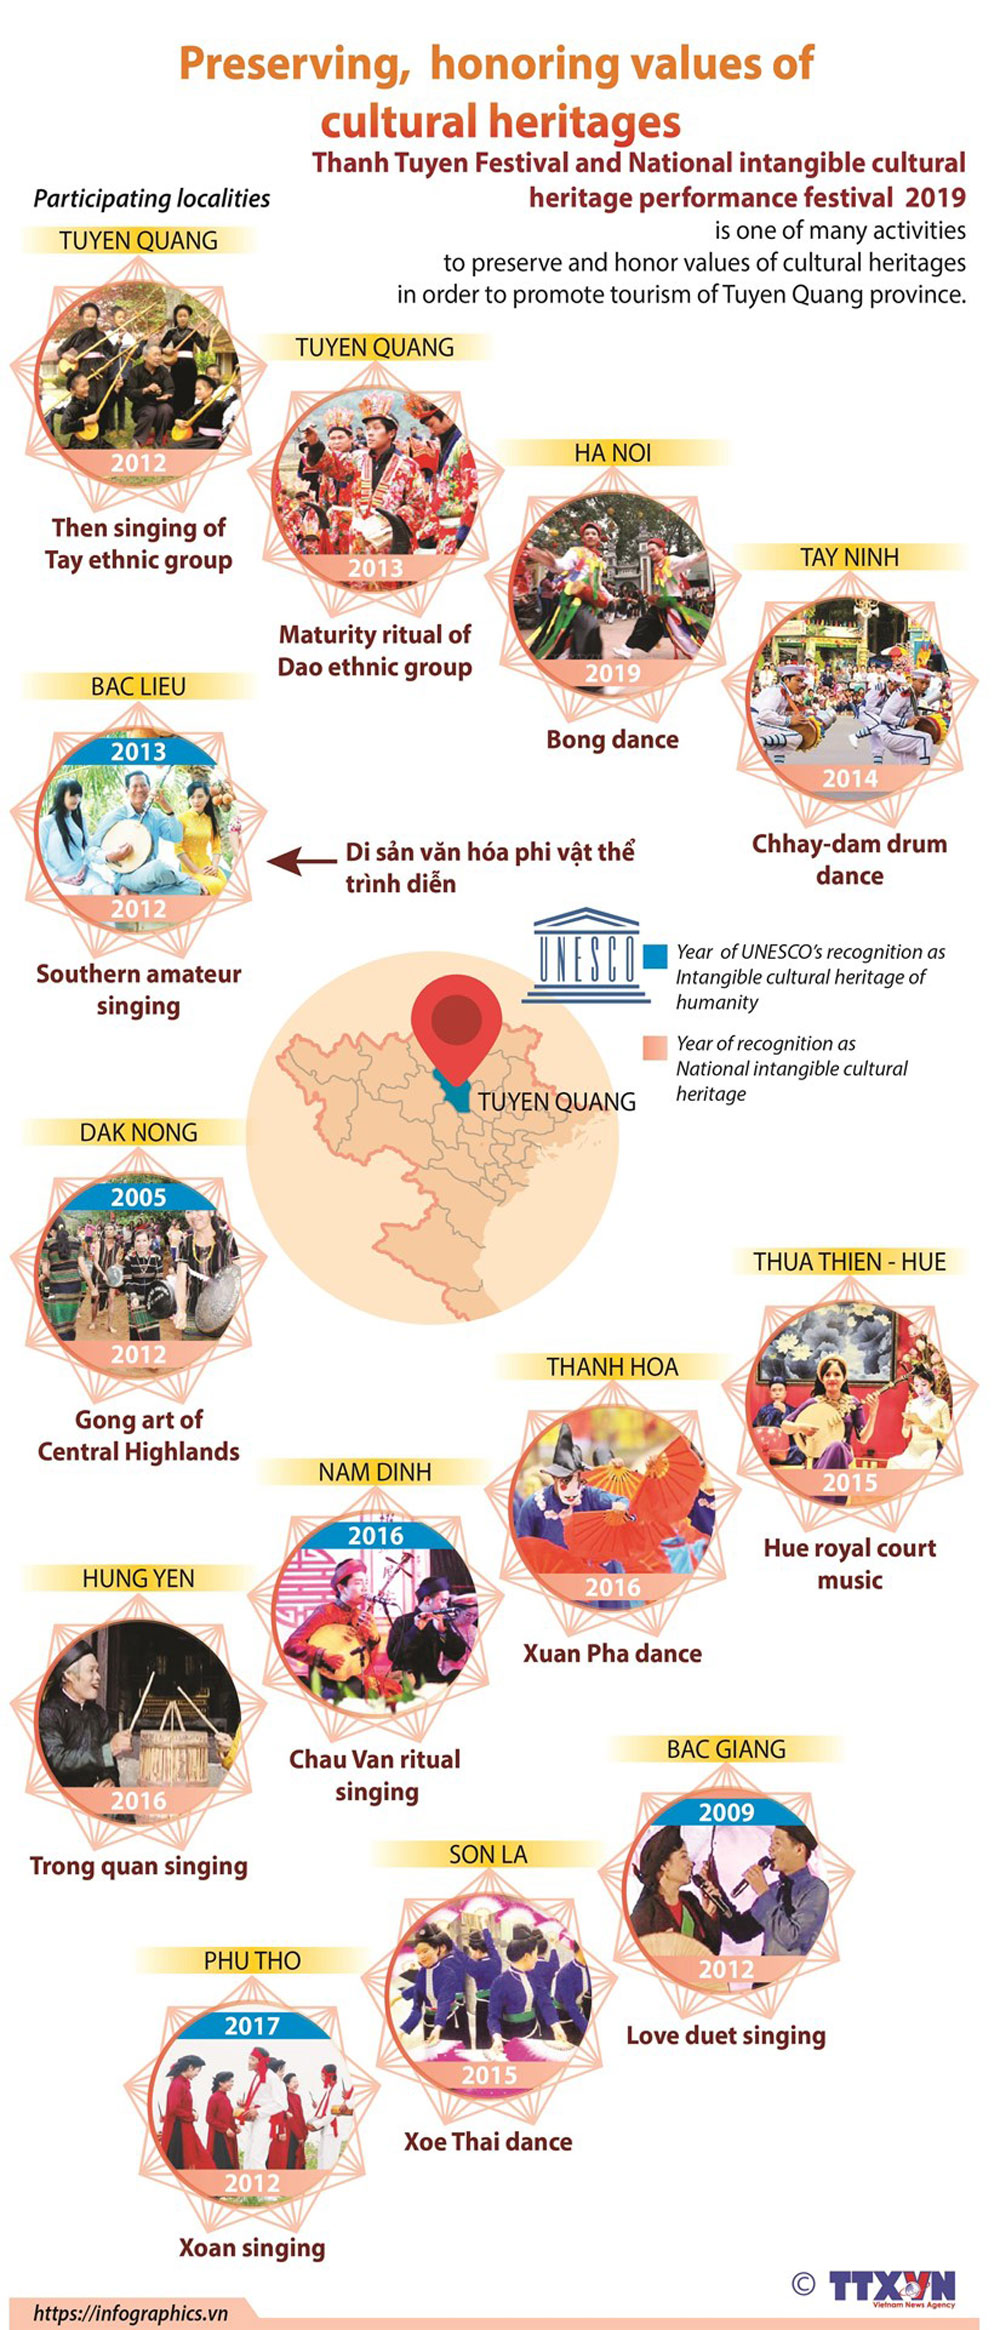 cultural heritages, Thanh Tuyen Festival, National intangible cultural heritage performance festival, cultural heritages